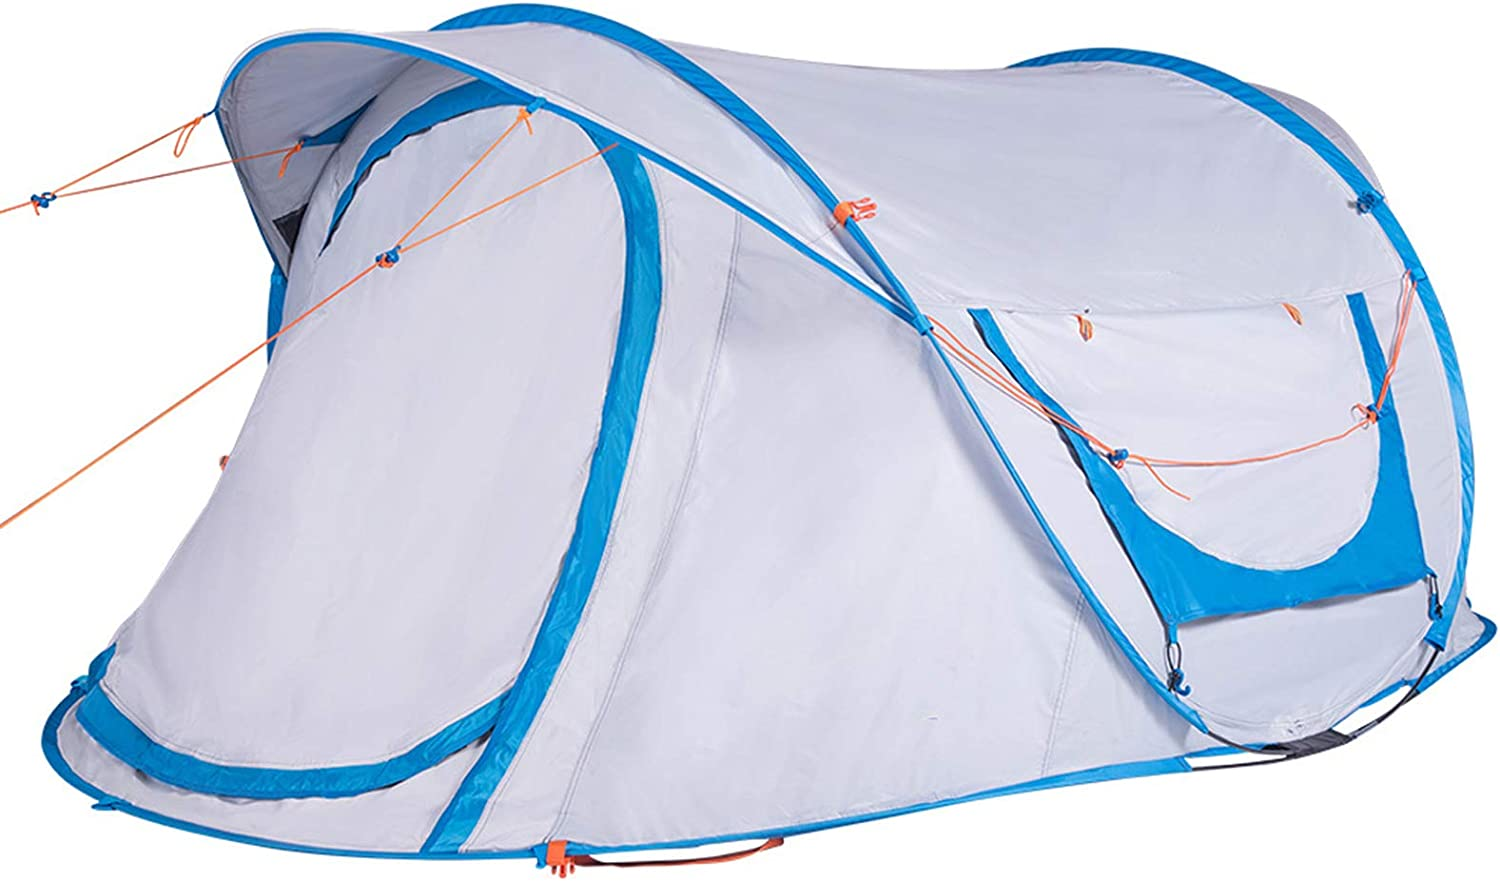 KTSWP Pop Great interest Up 55% OFF Tent Automatic Camping Ultralight Ventilation